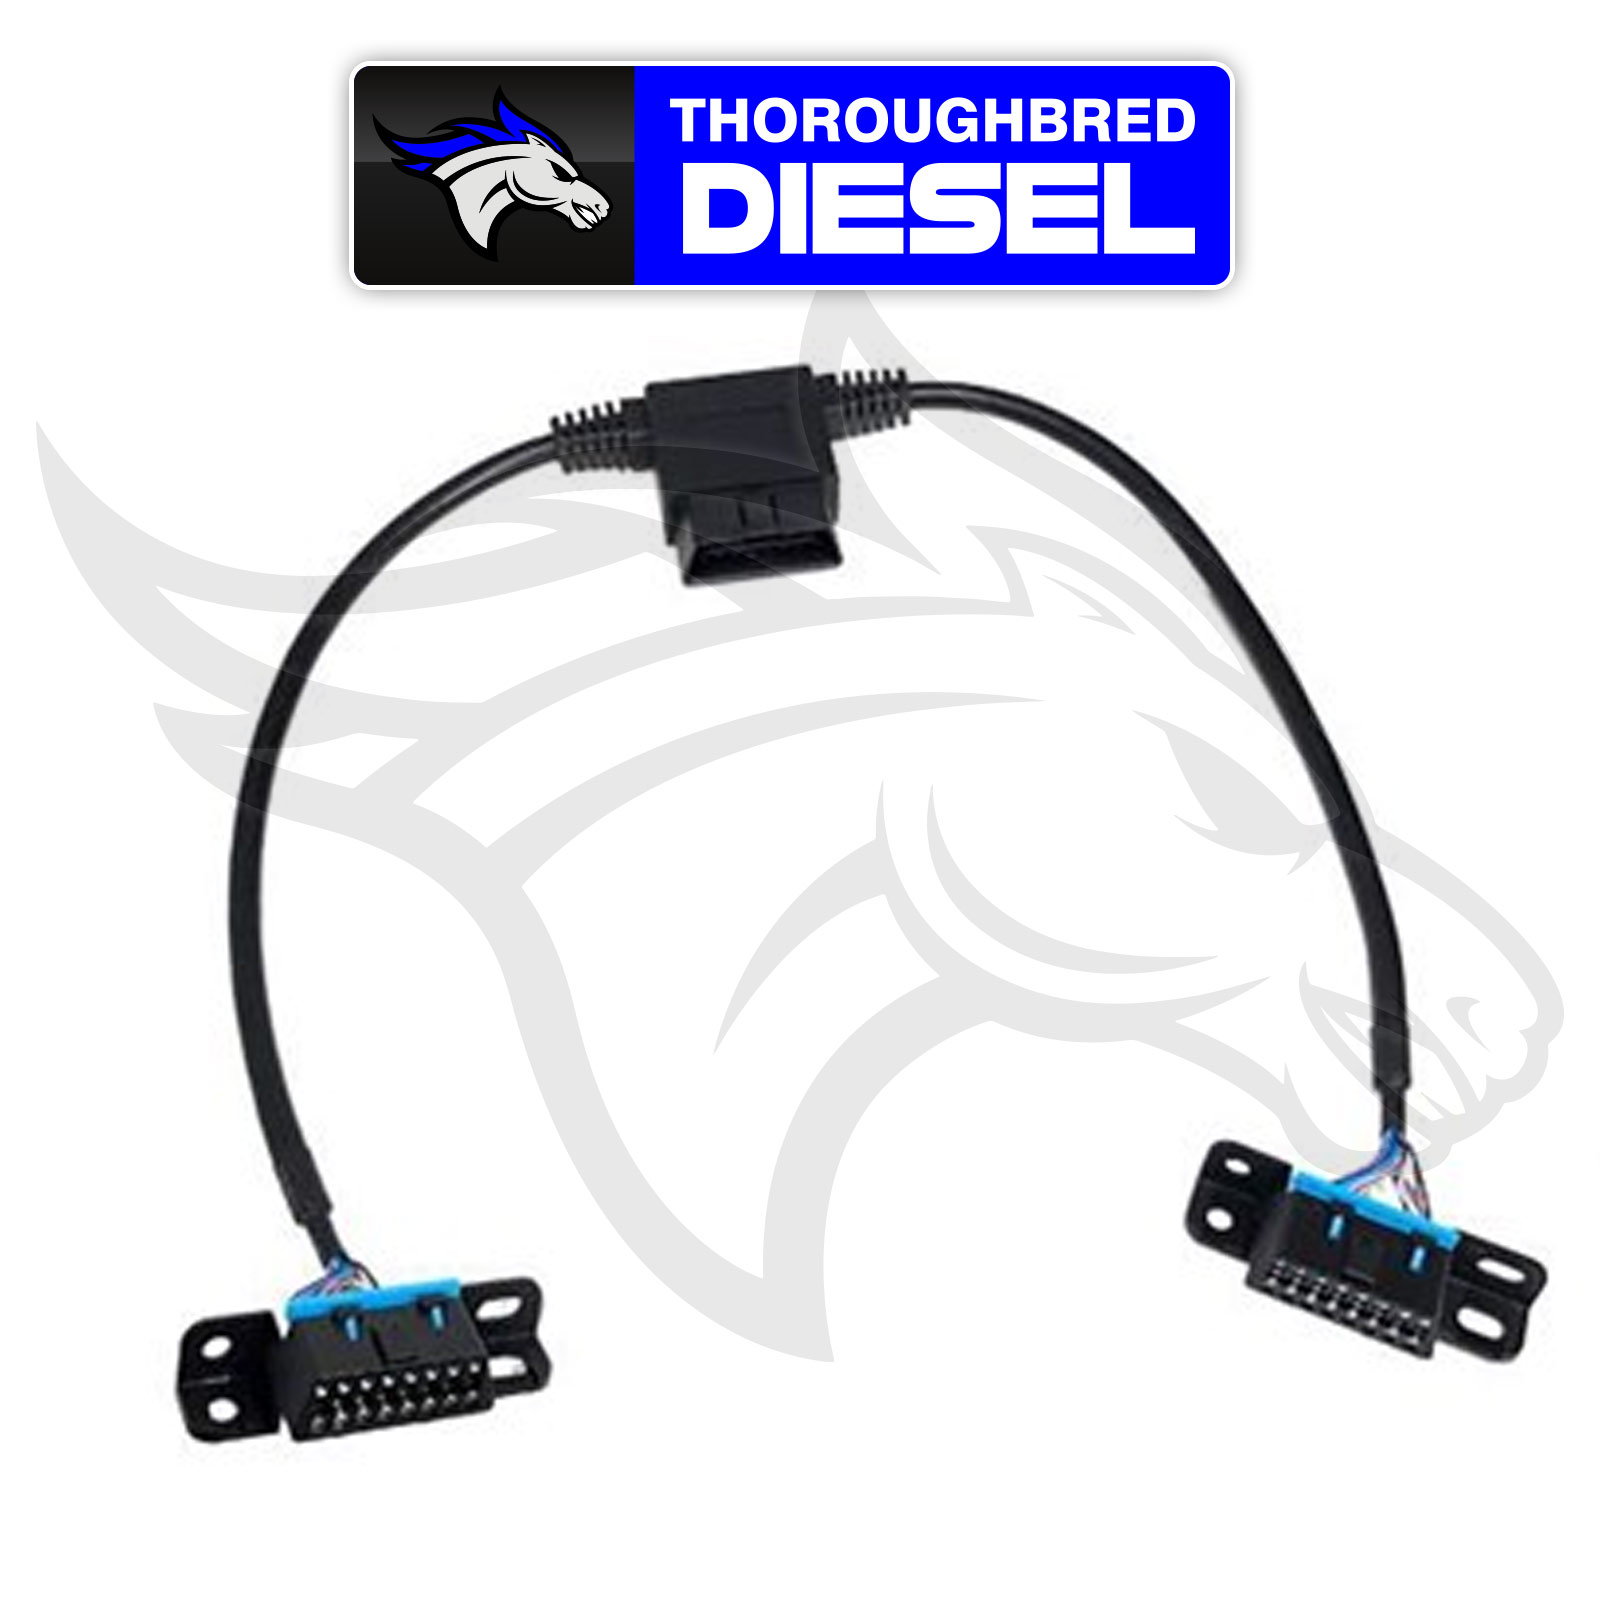 Edge OBDII Pass Through Splitter For All 1996 Obd II Compliant Vehicles 98106